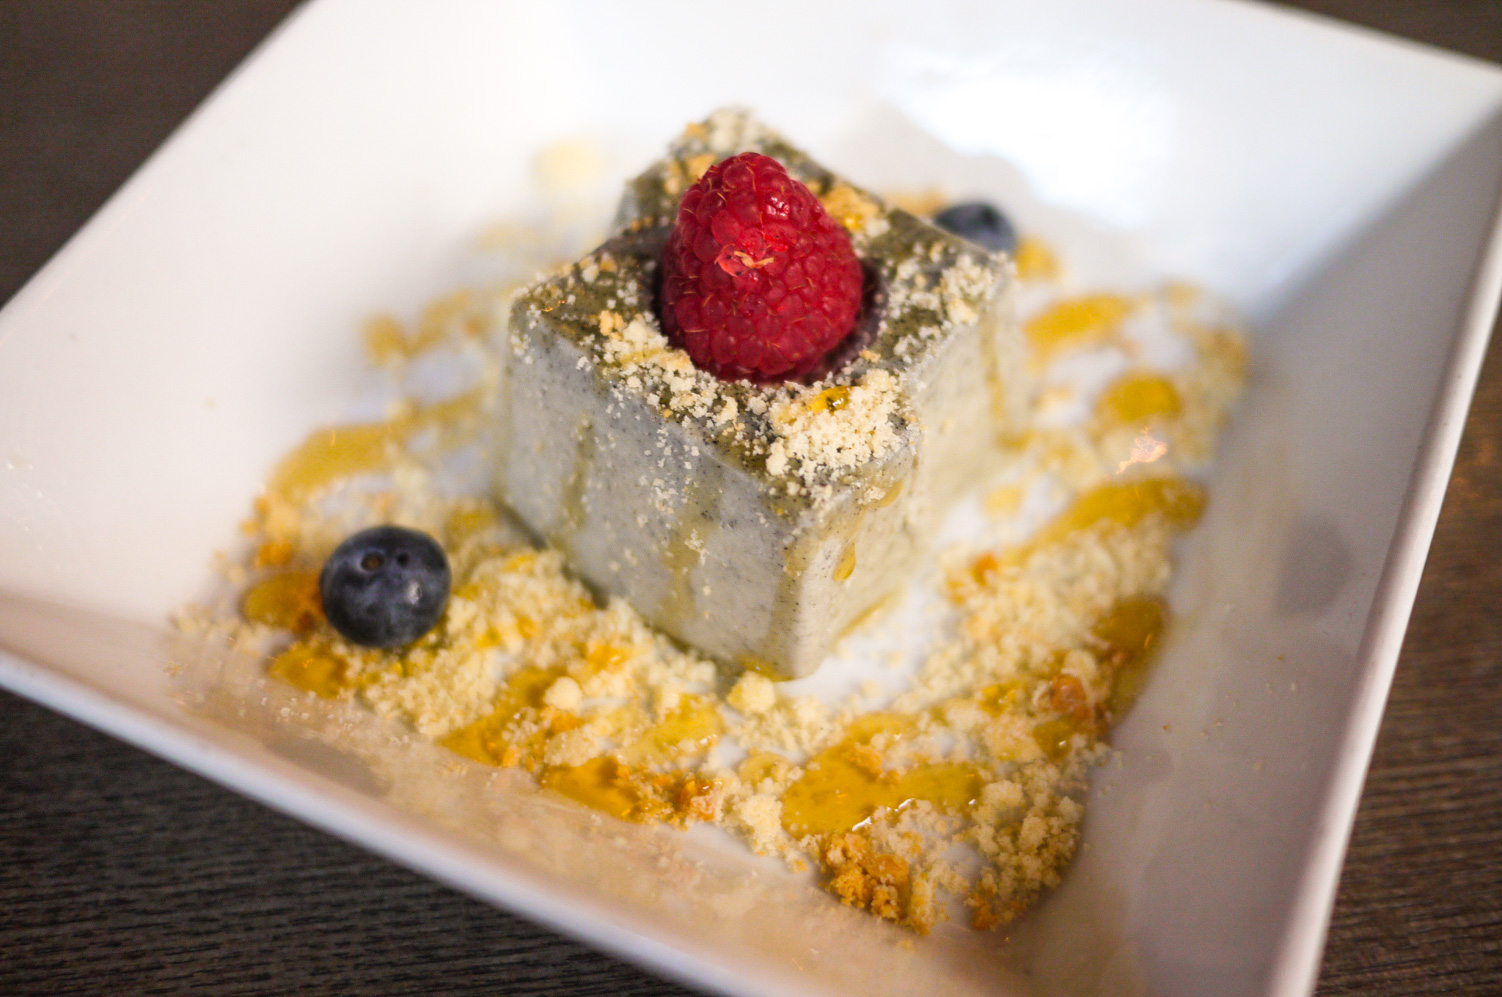 Barn Joo doesn't have much options when it comes to dessert, so don't get high hopes with their selection. We had  Black Sesame Mousse with berries and crumbs  and it was just okay. Not exactly the flavor I was looking for.